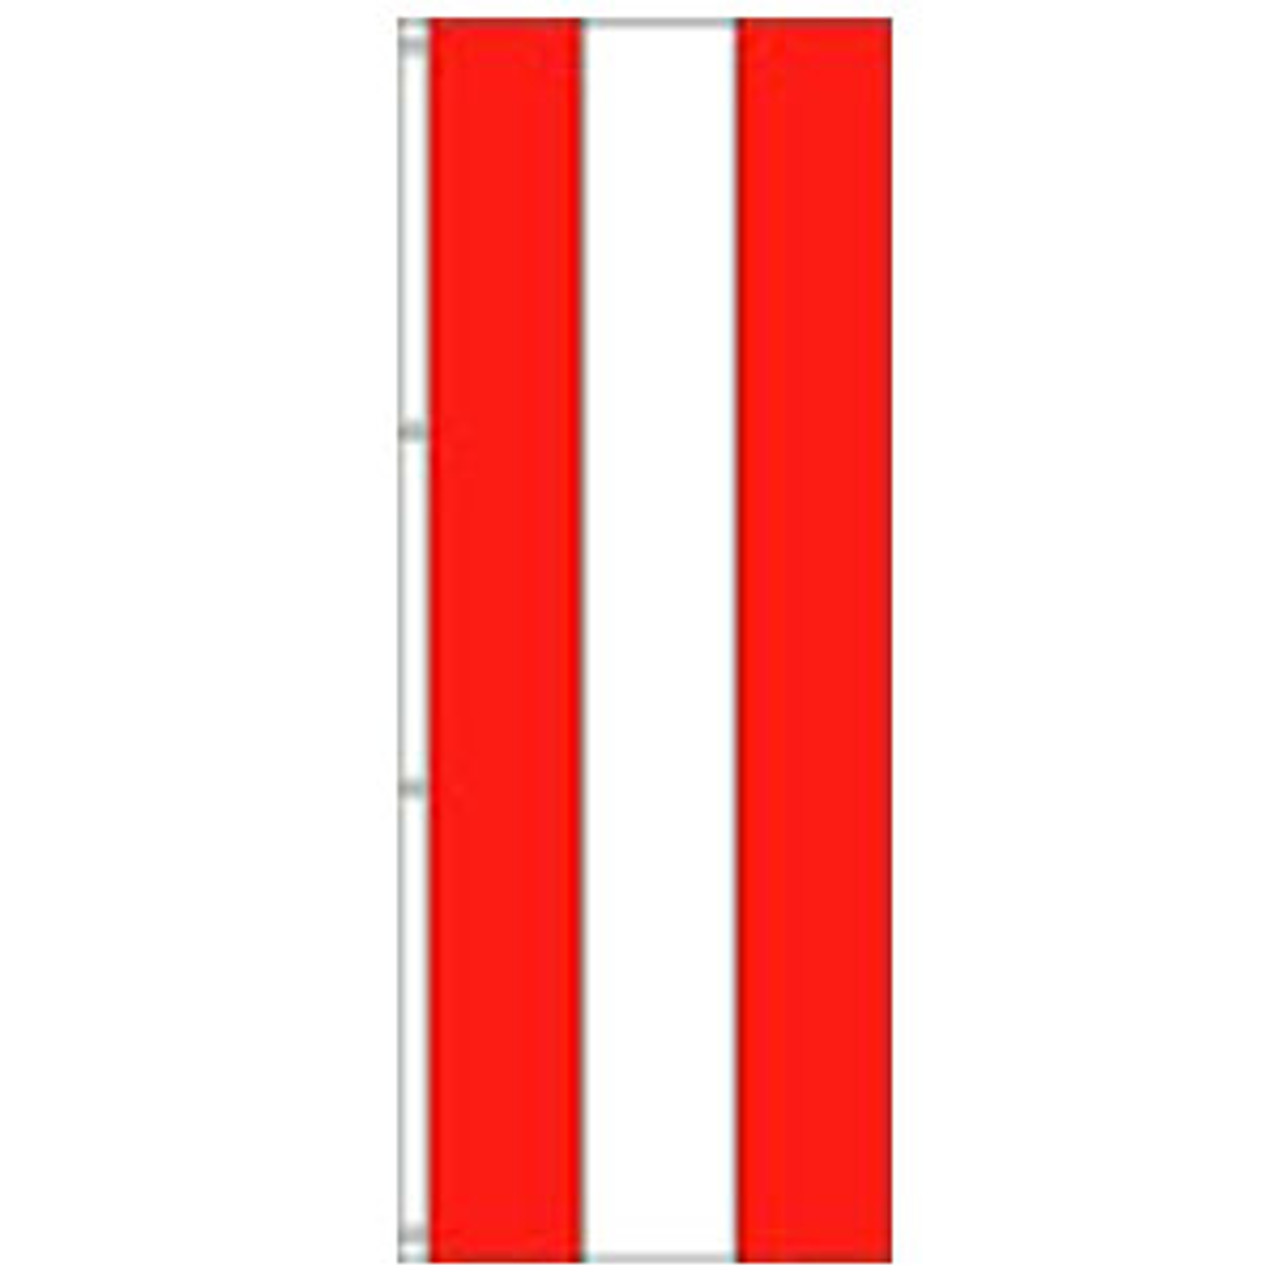 Attention 3-Stripe Solid Color Vertical Tall Flag